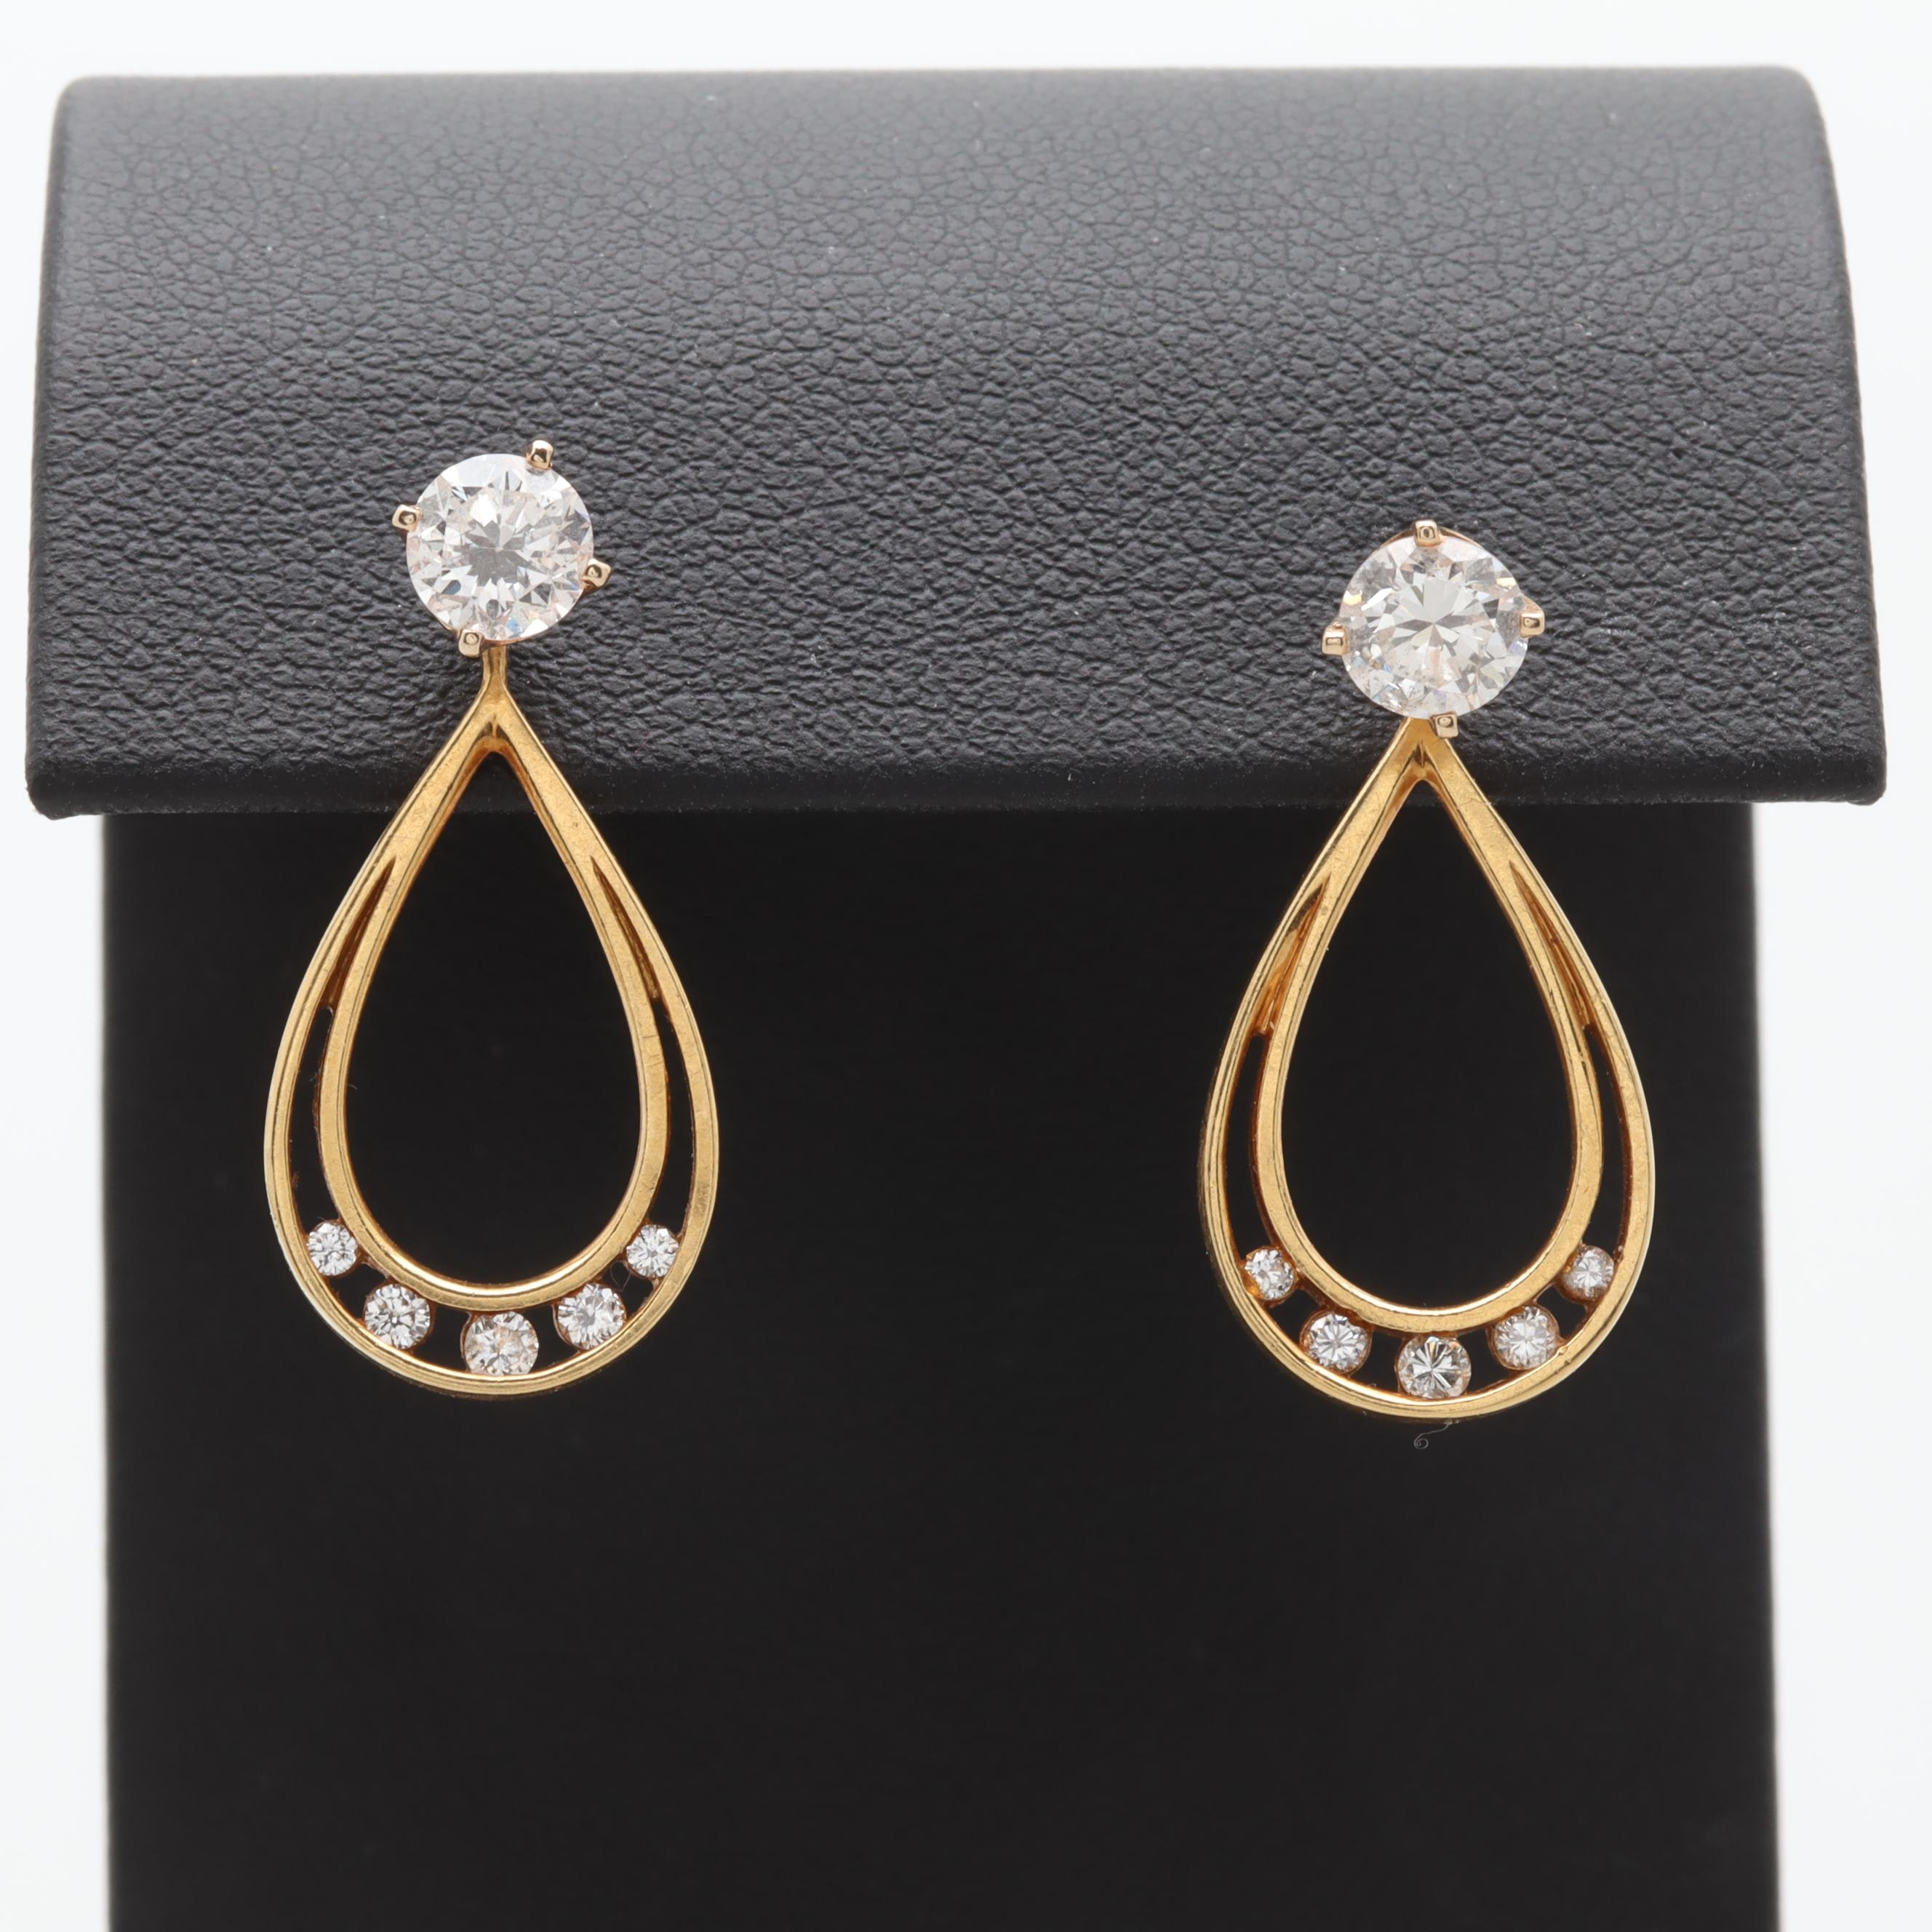 14K and 18K Yellow Gold 1.14 CTW Diamond Earrings and Jackets